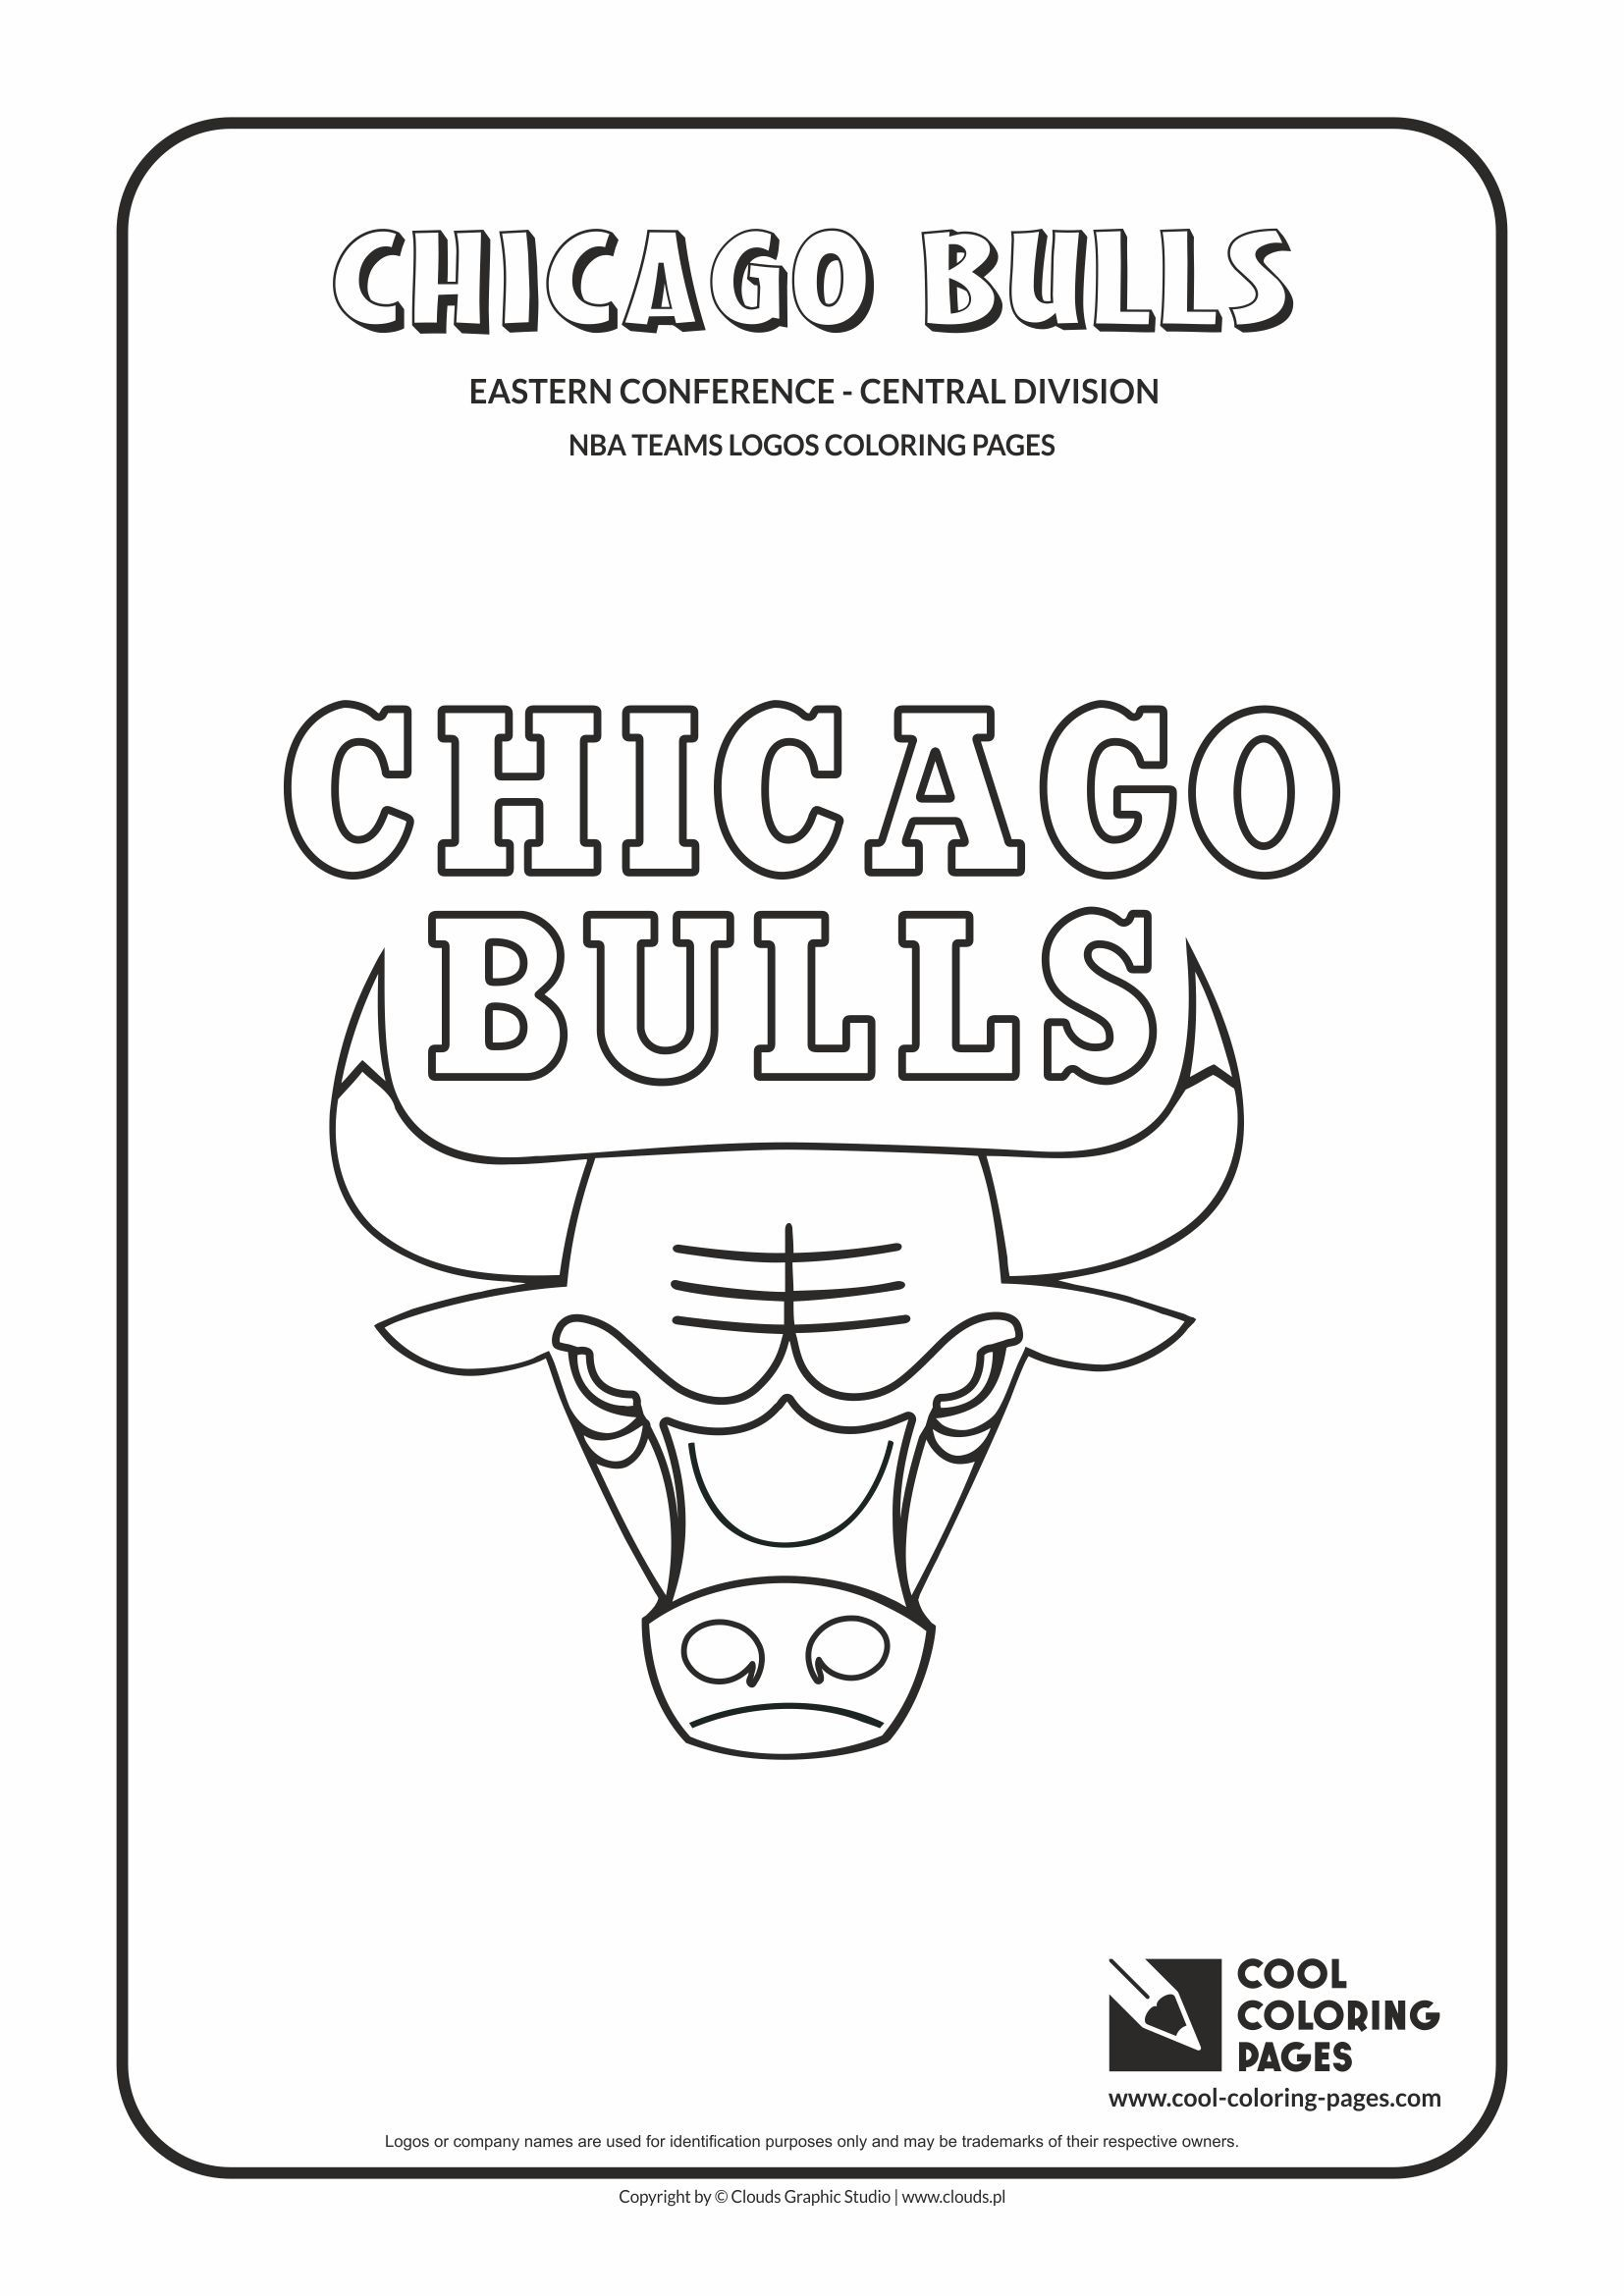 Cool Coloring Pages - NBA Teams Logos / Chicago Bulls logo ...